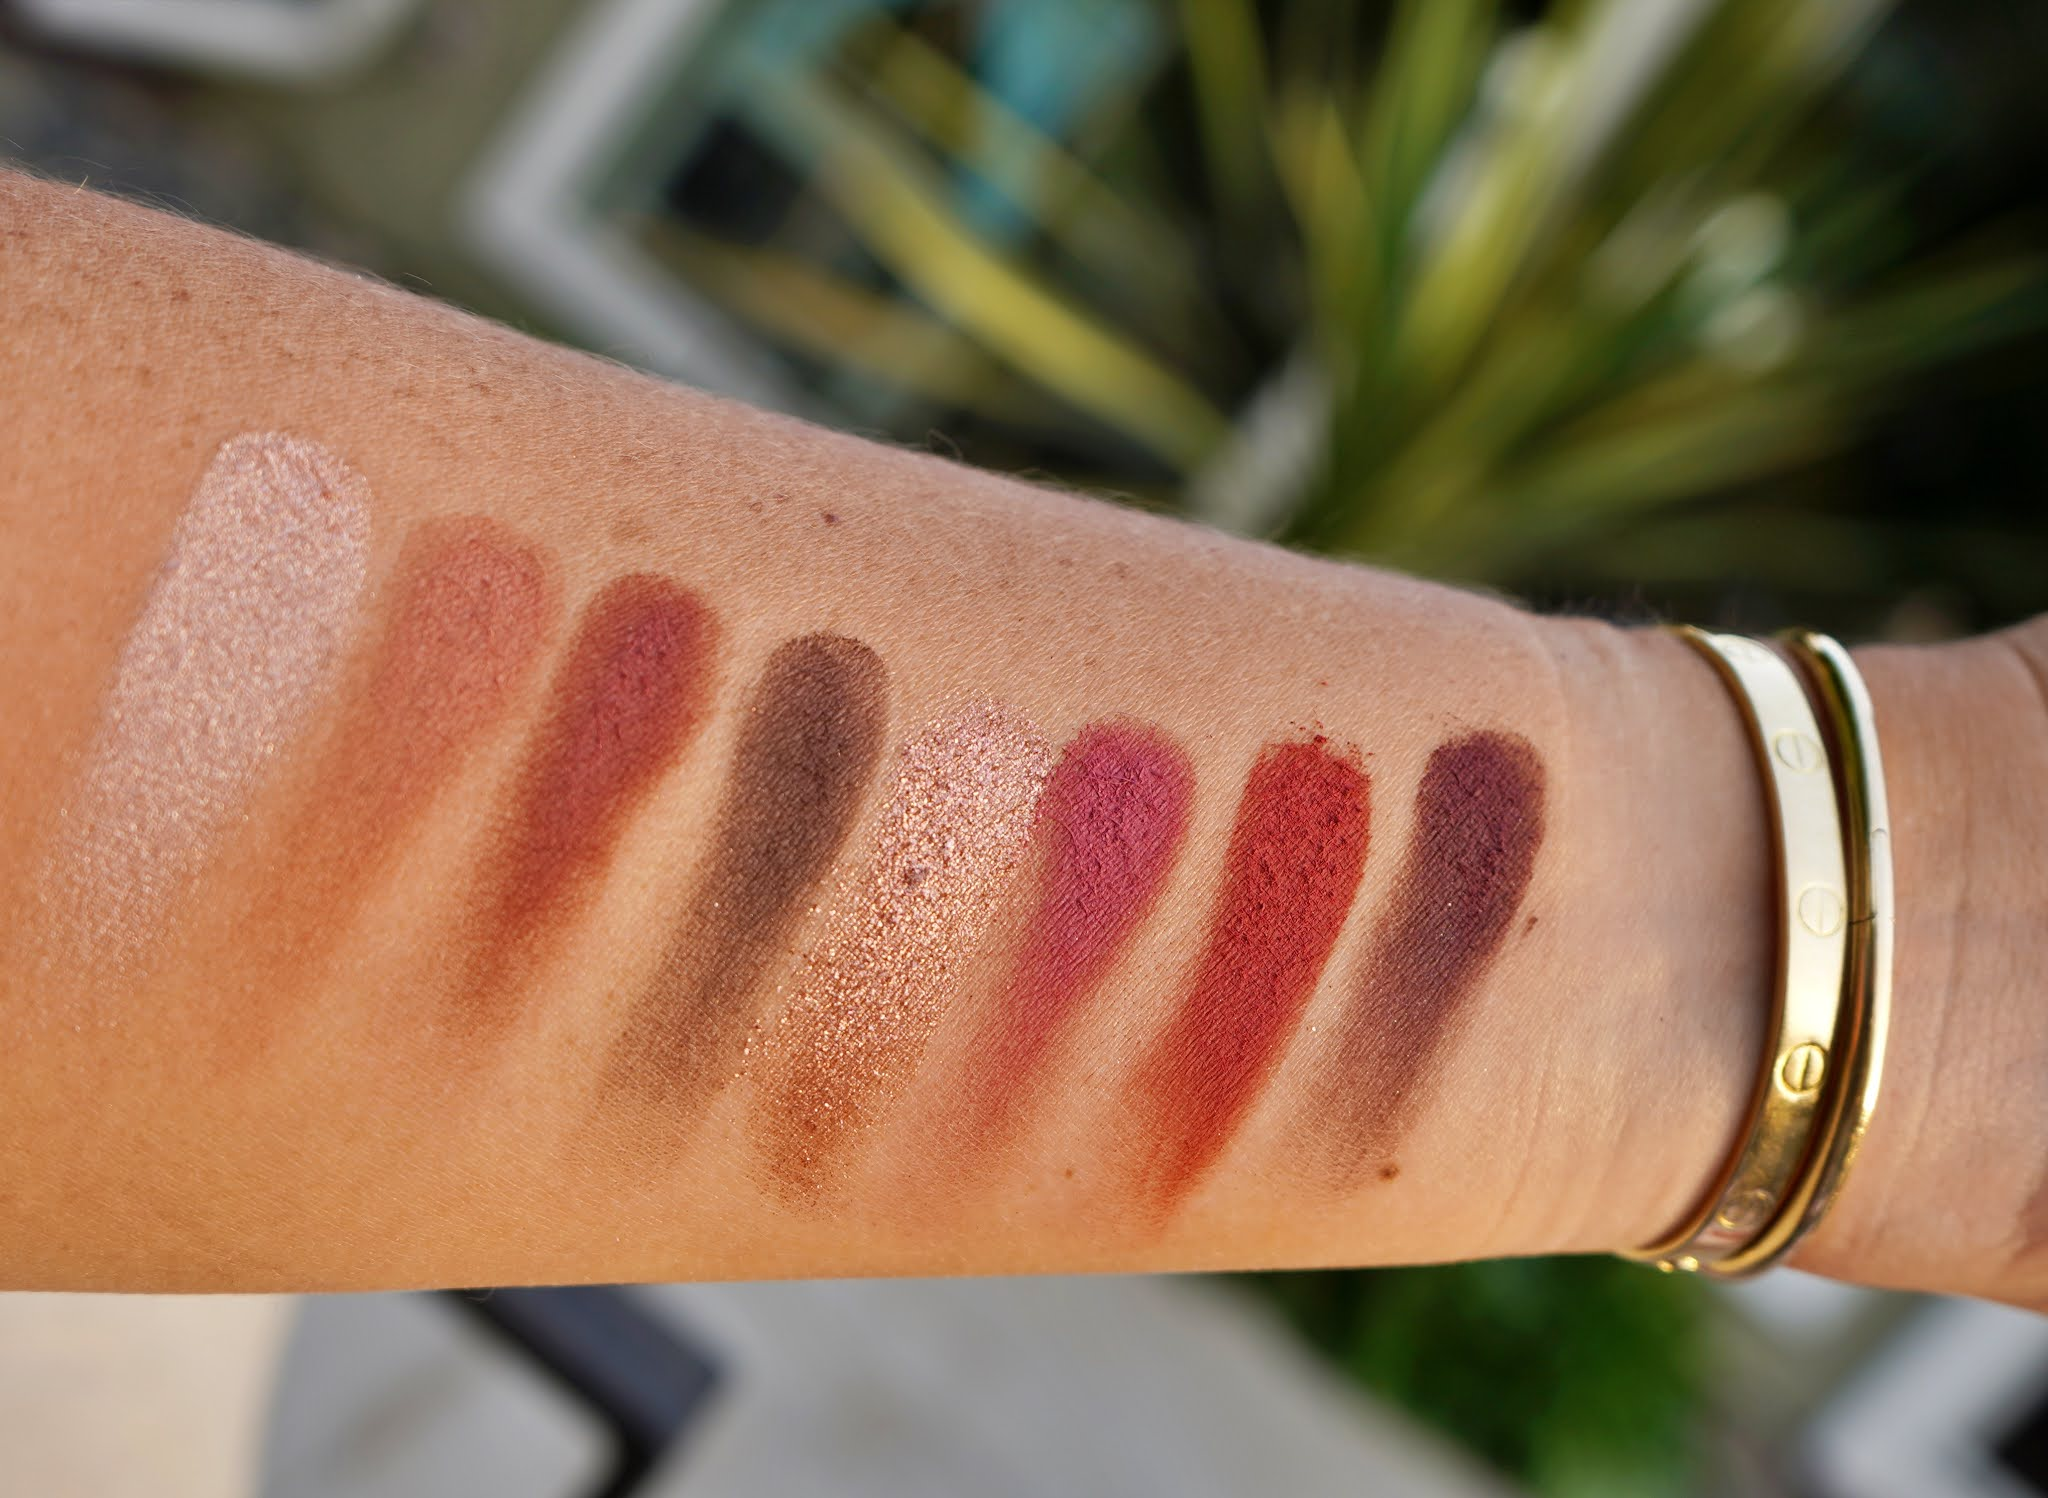 eye makeup swatch in an arm